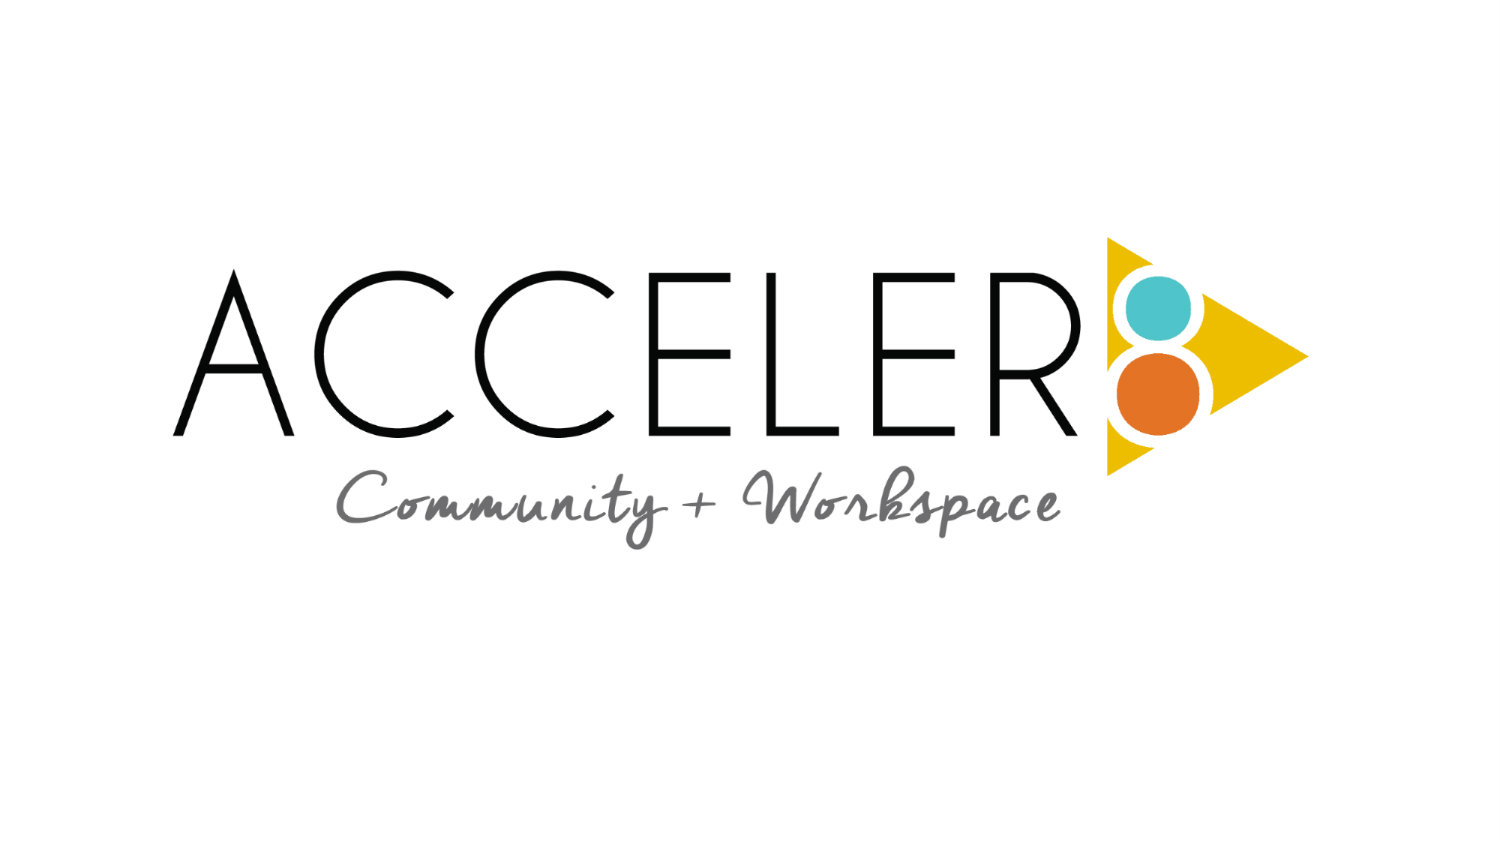 Acceler8 logo combination resize